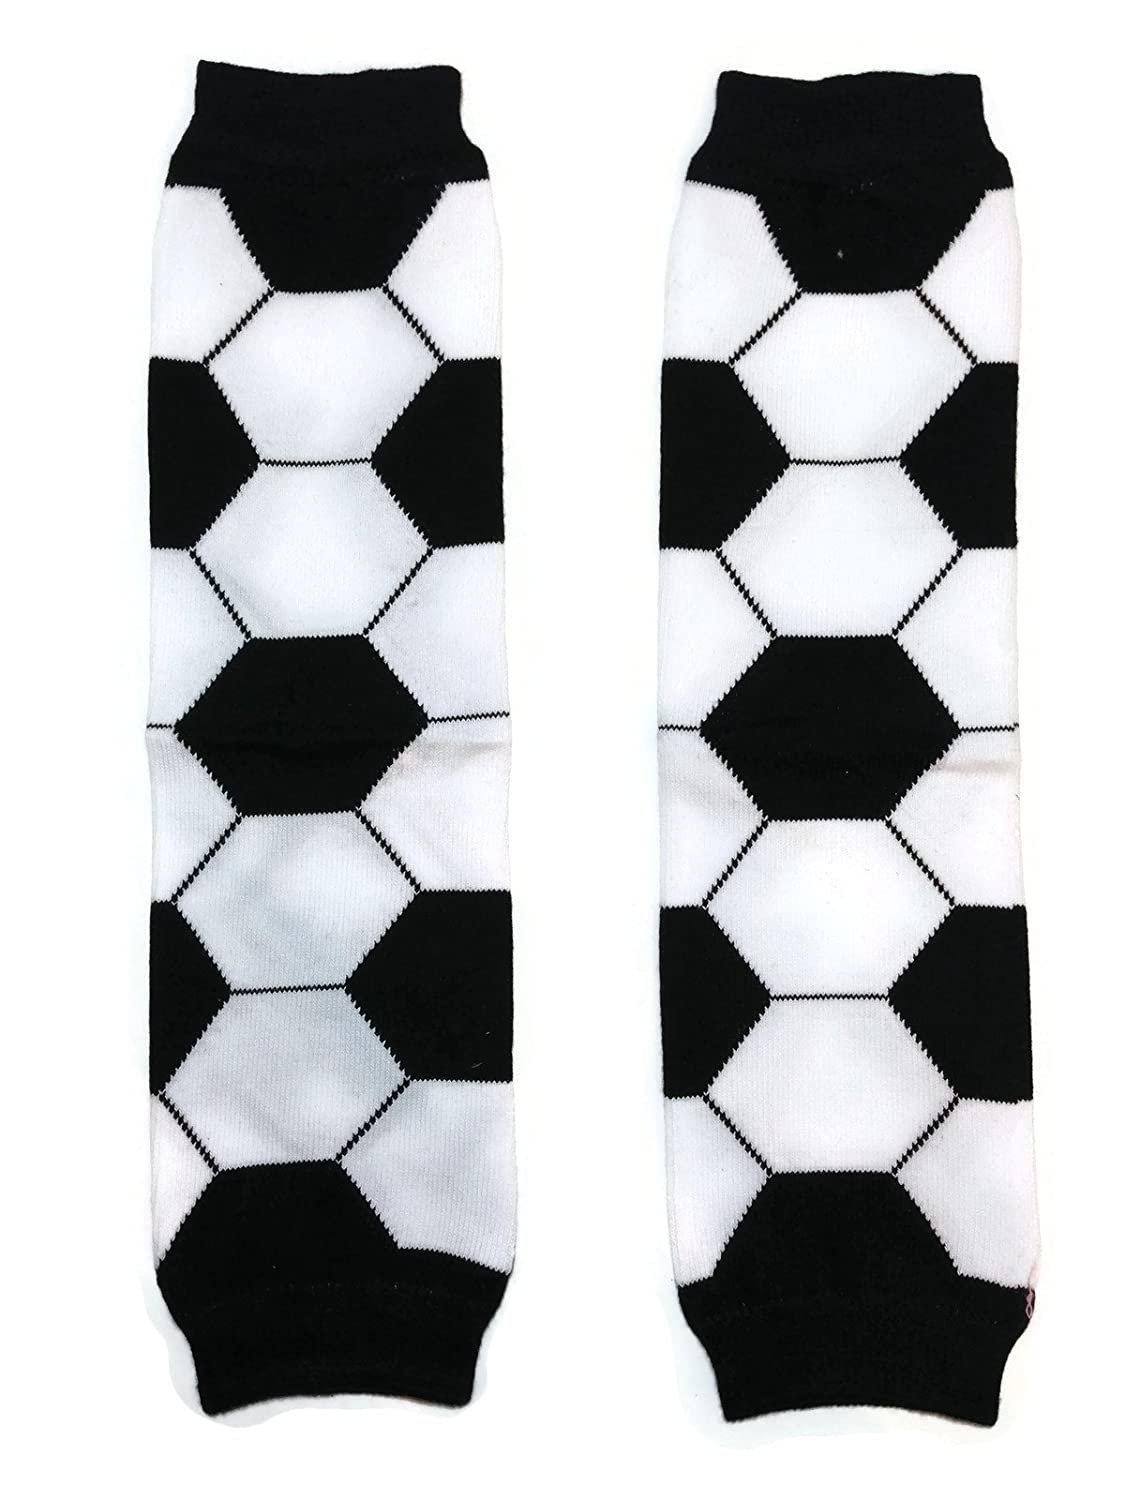 Rush Dance All Time Sports Playball Baby/Toddler Leg Warmers